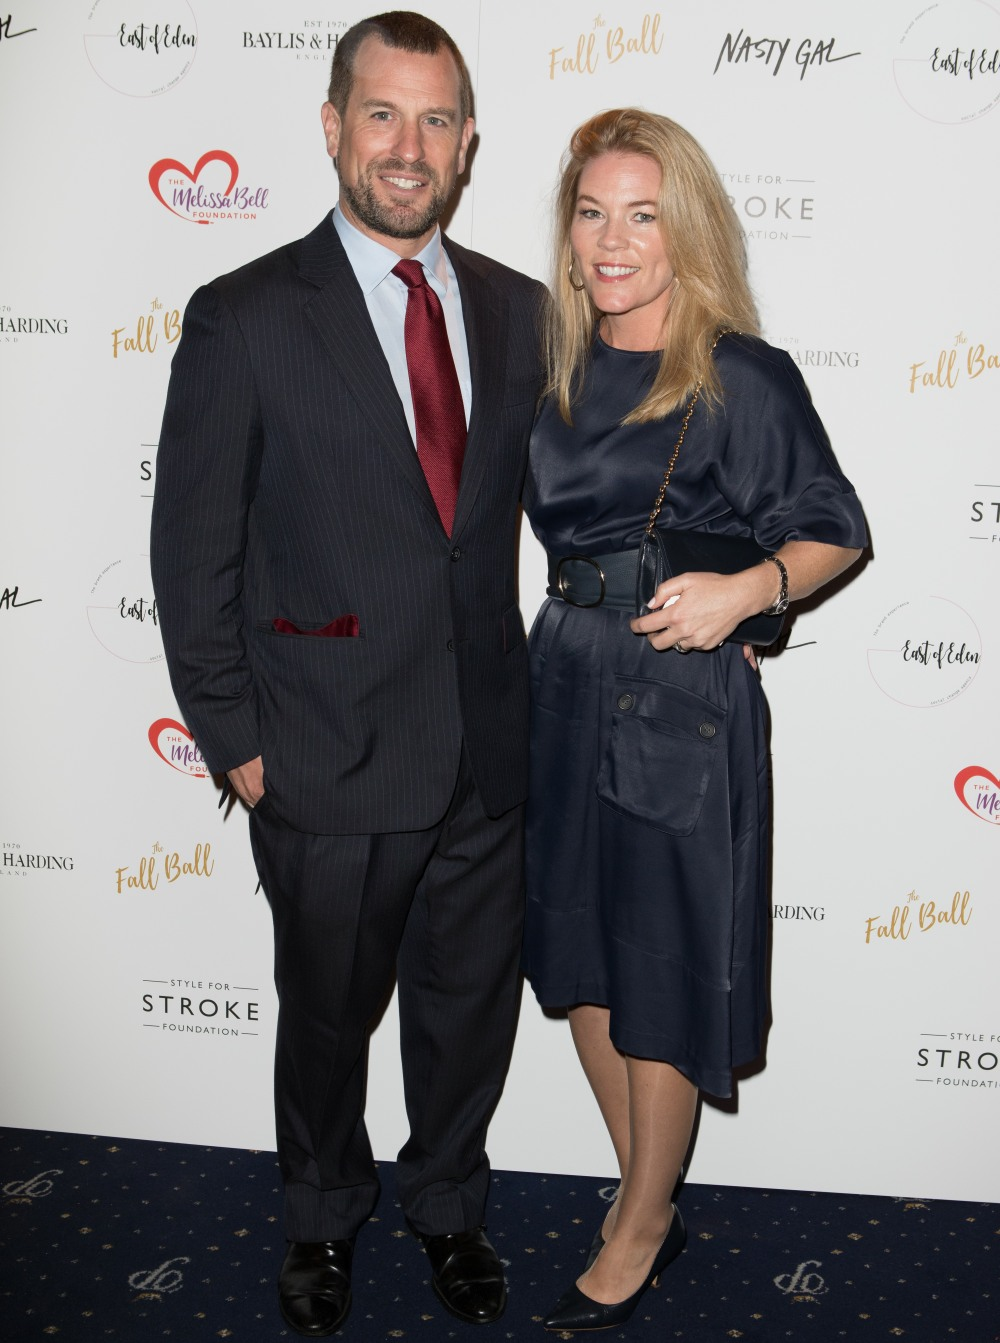 Style for Stroke Foundation: The Fall Ball